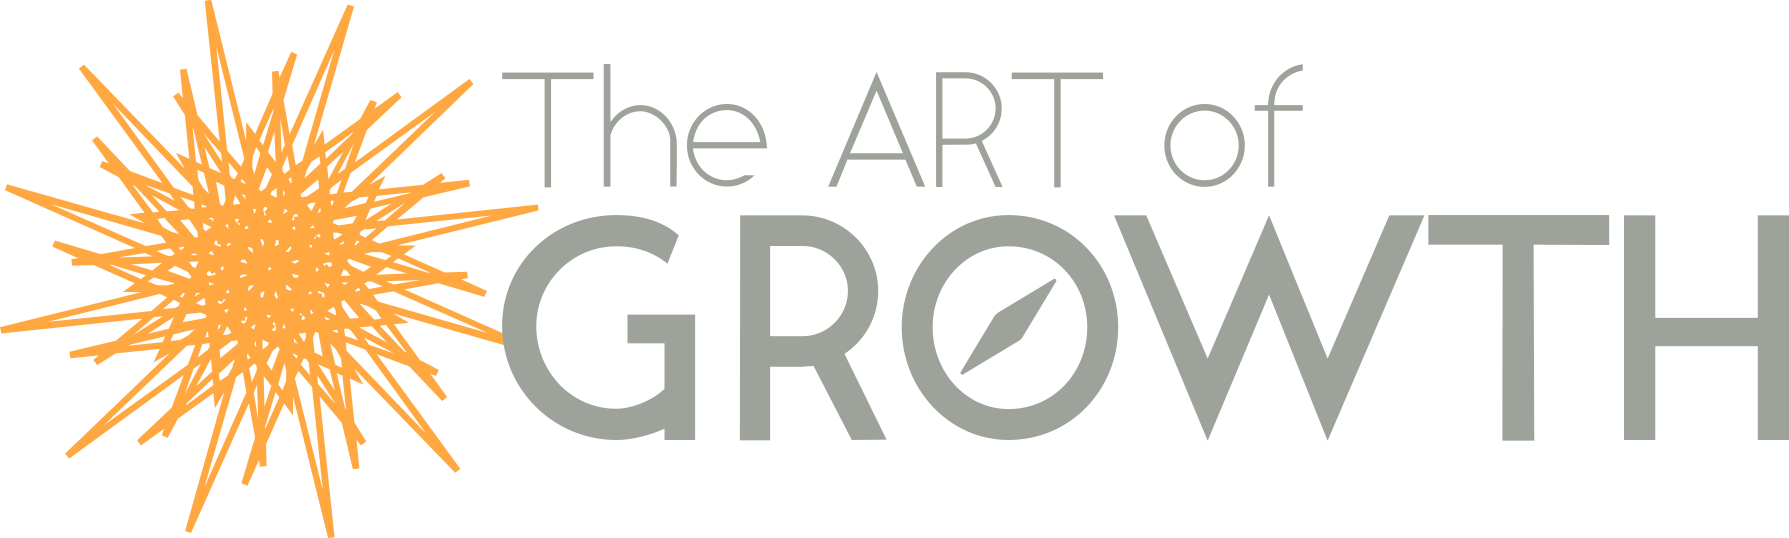 the art of growth logo